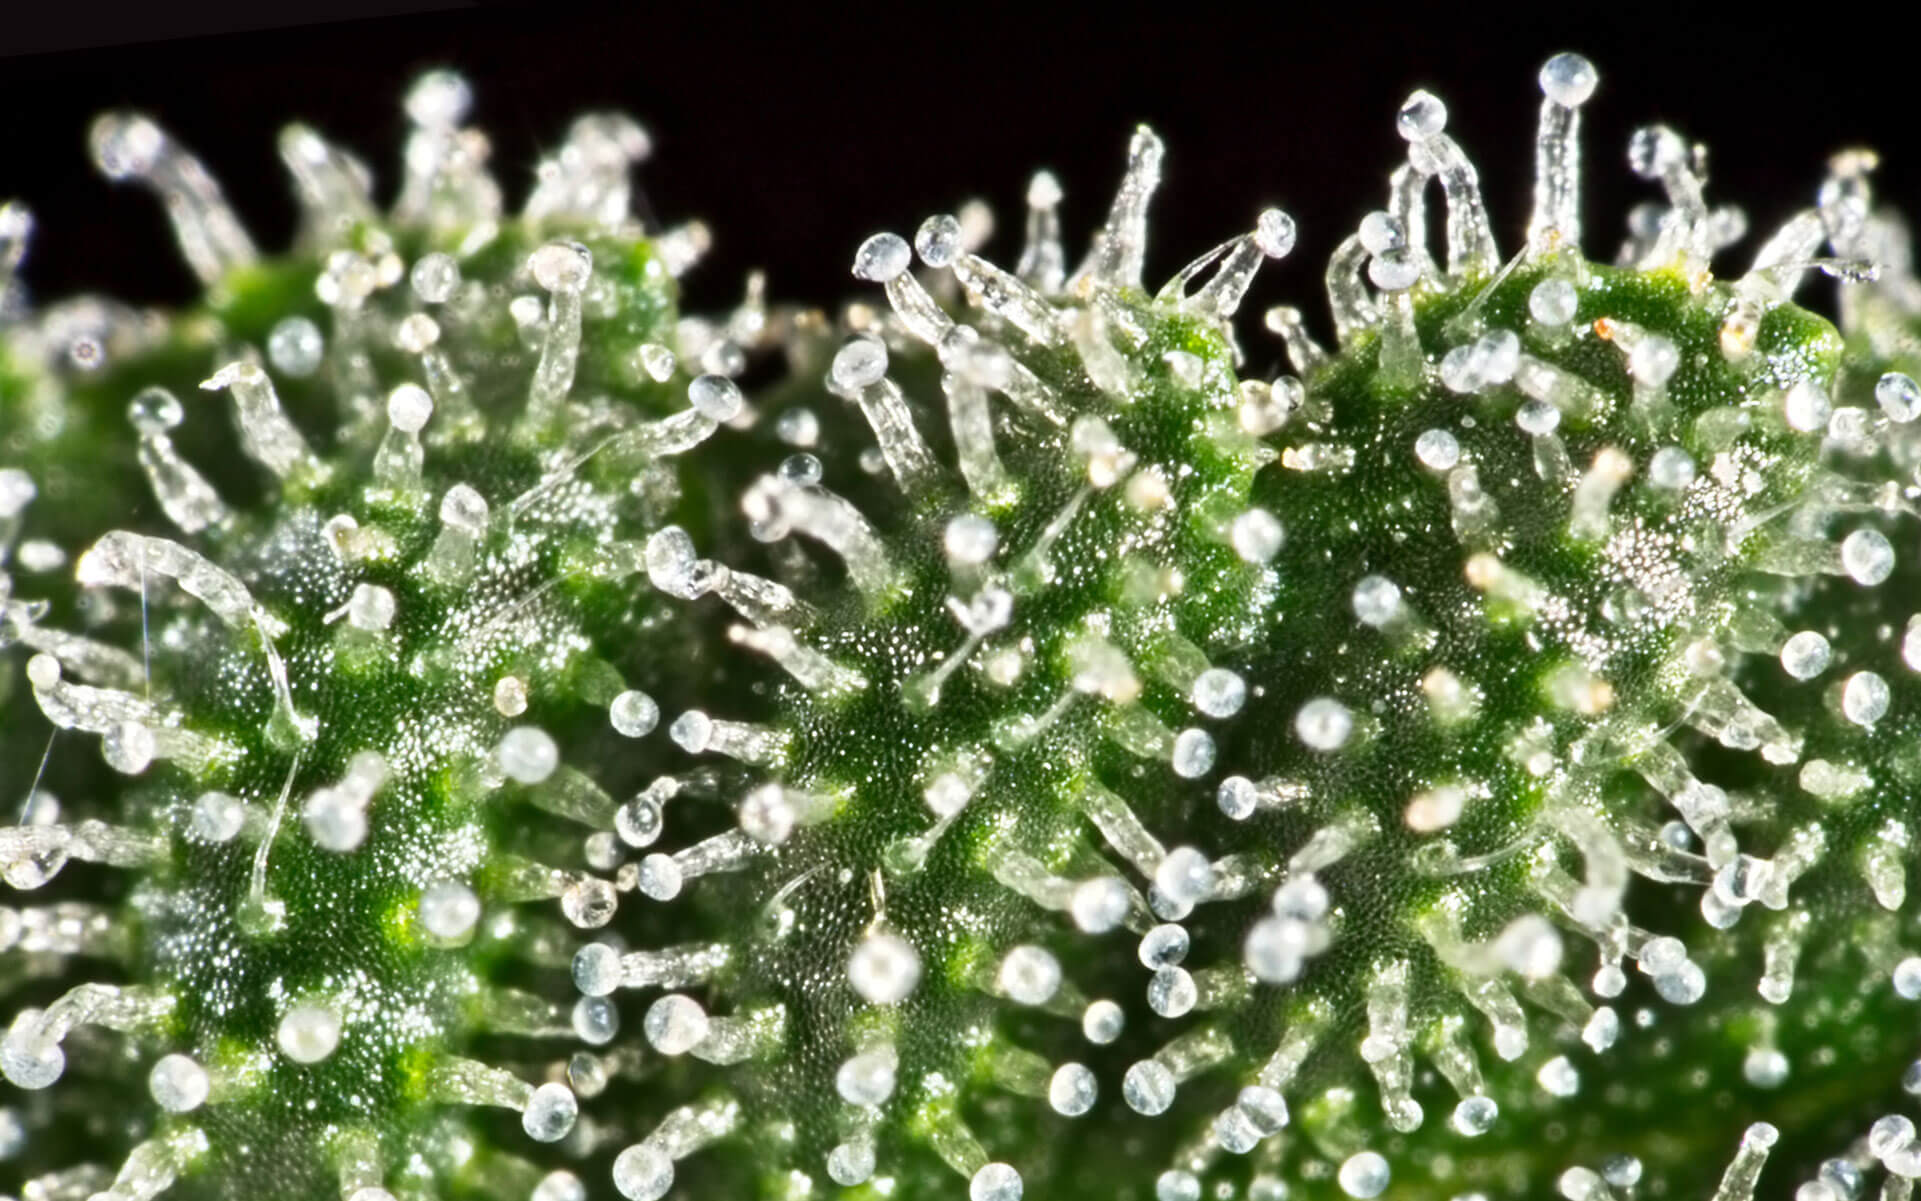 The Crystals of Trichomes